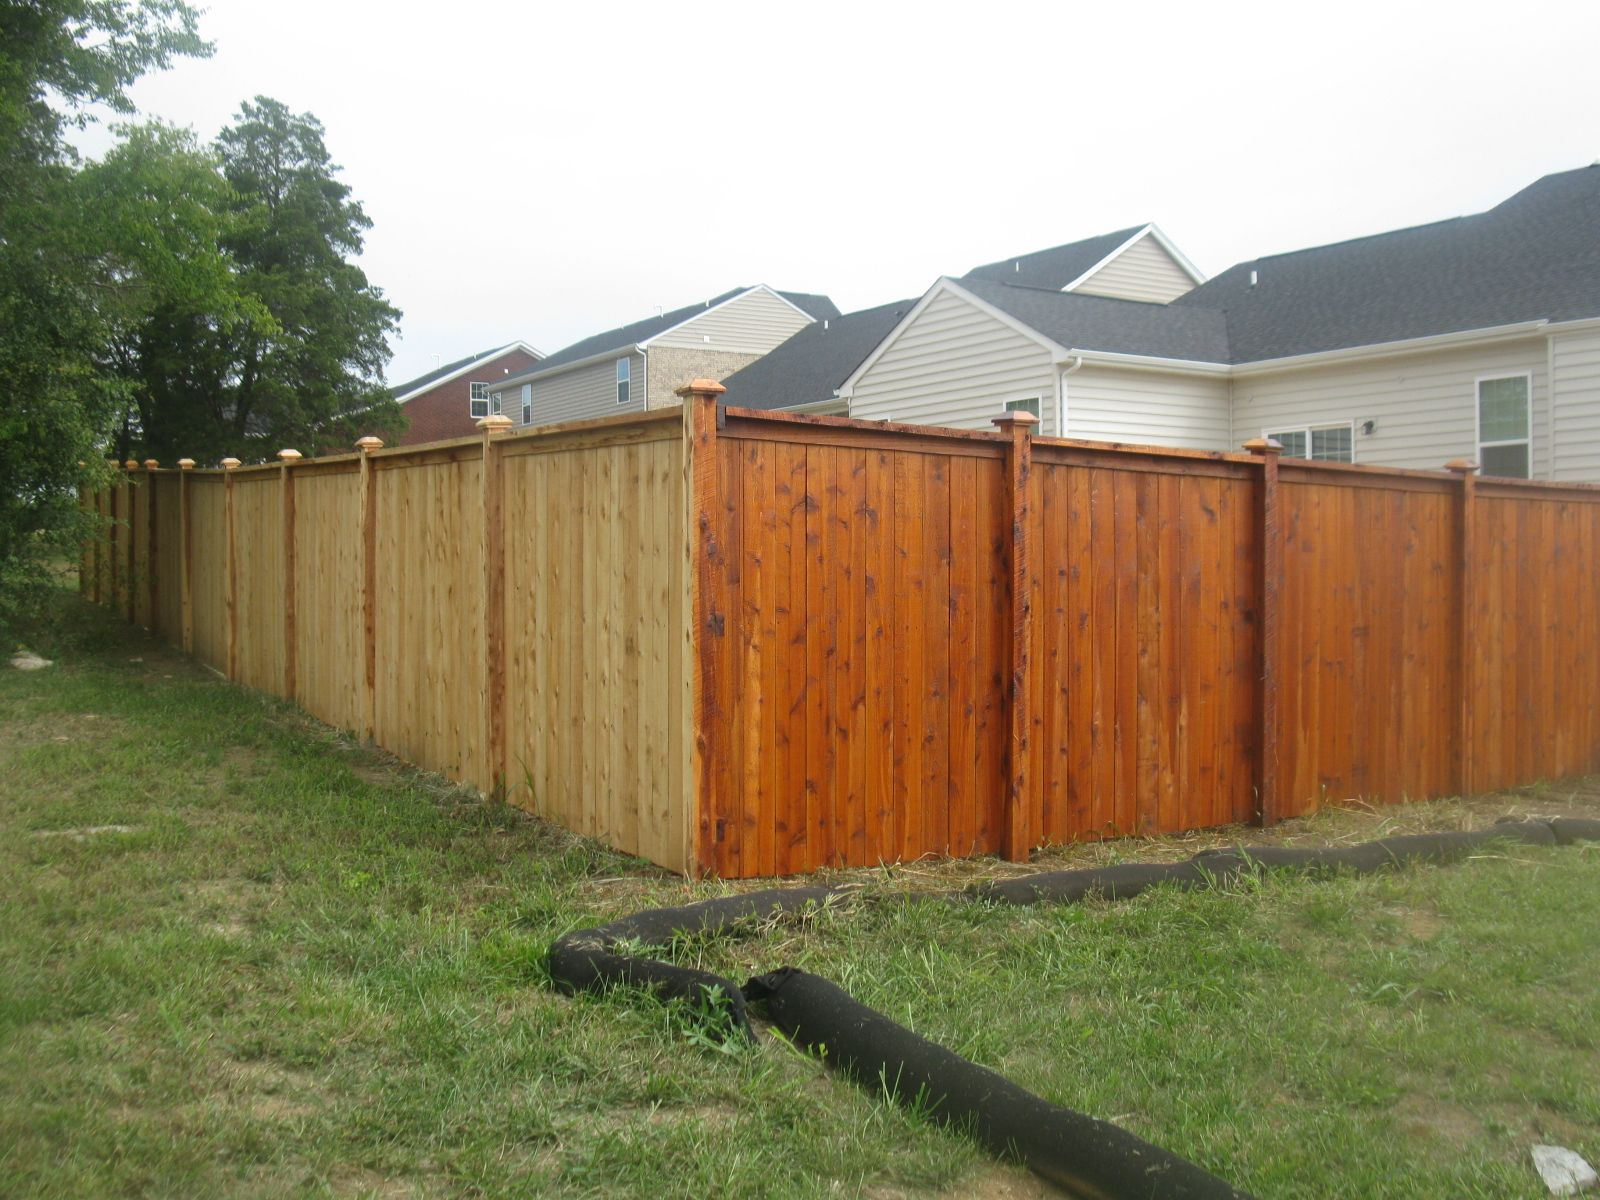 Before And After Our Cedar Tone Fence Stain And Seal On A Cedar And Cypress Cap And Trim Style Privacy Fence In Mt Juliet Tn Fence Stain Fence 1960s House